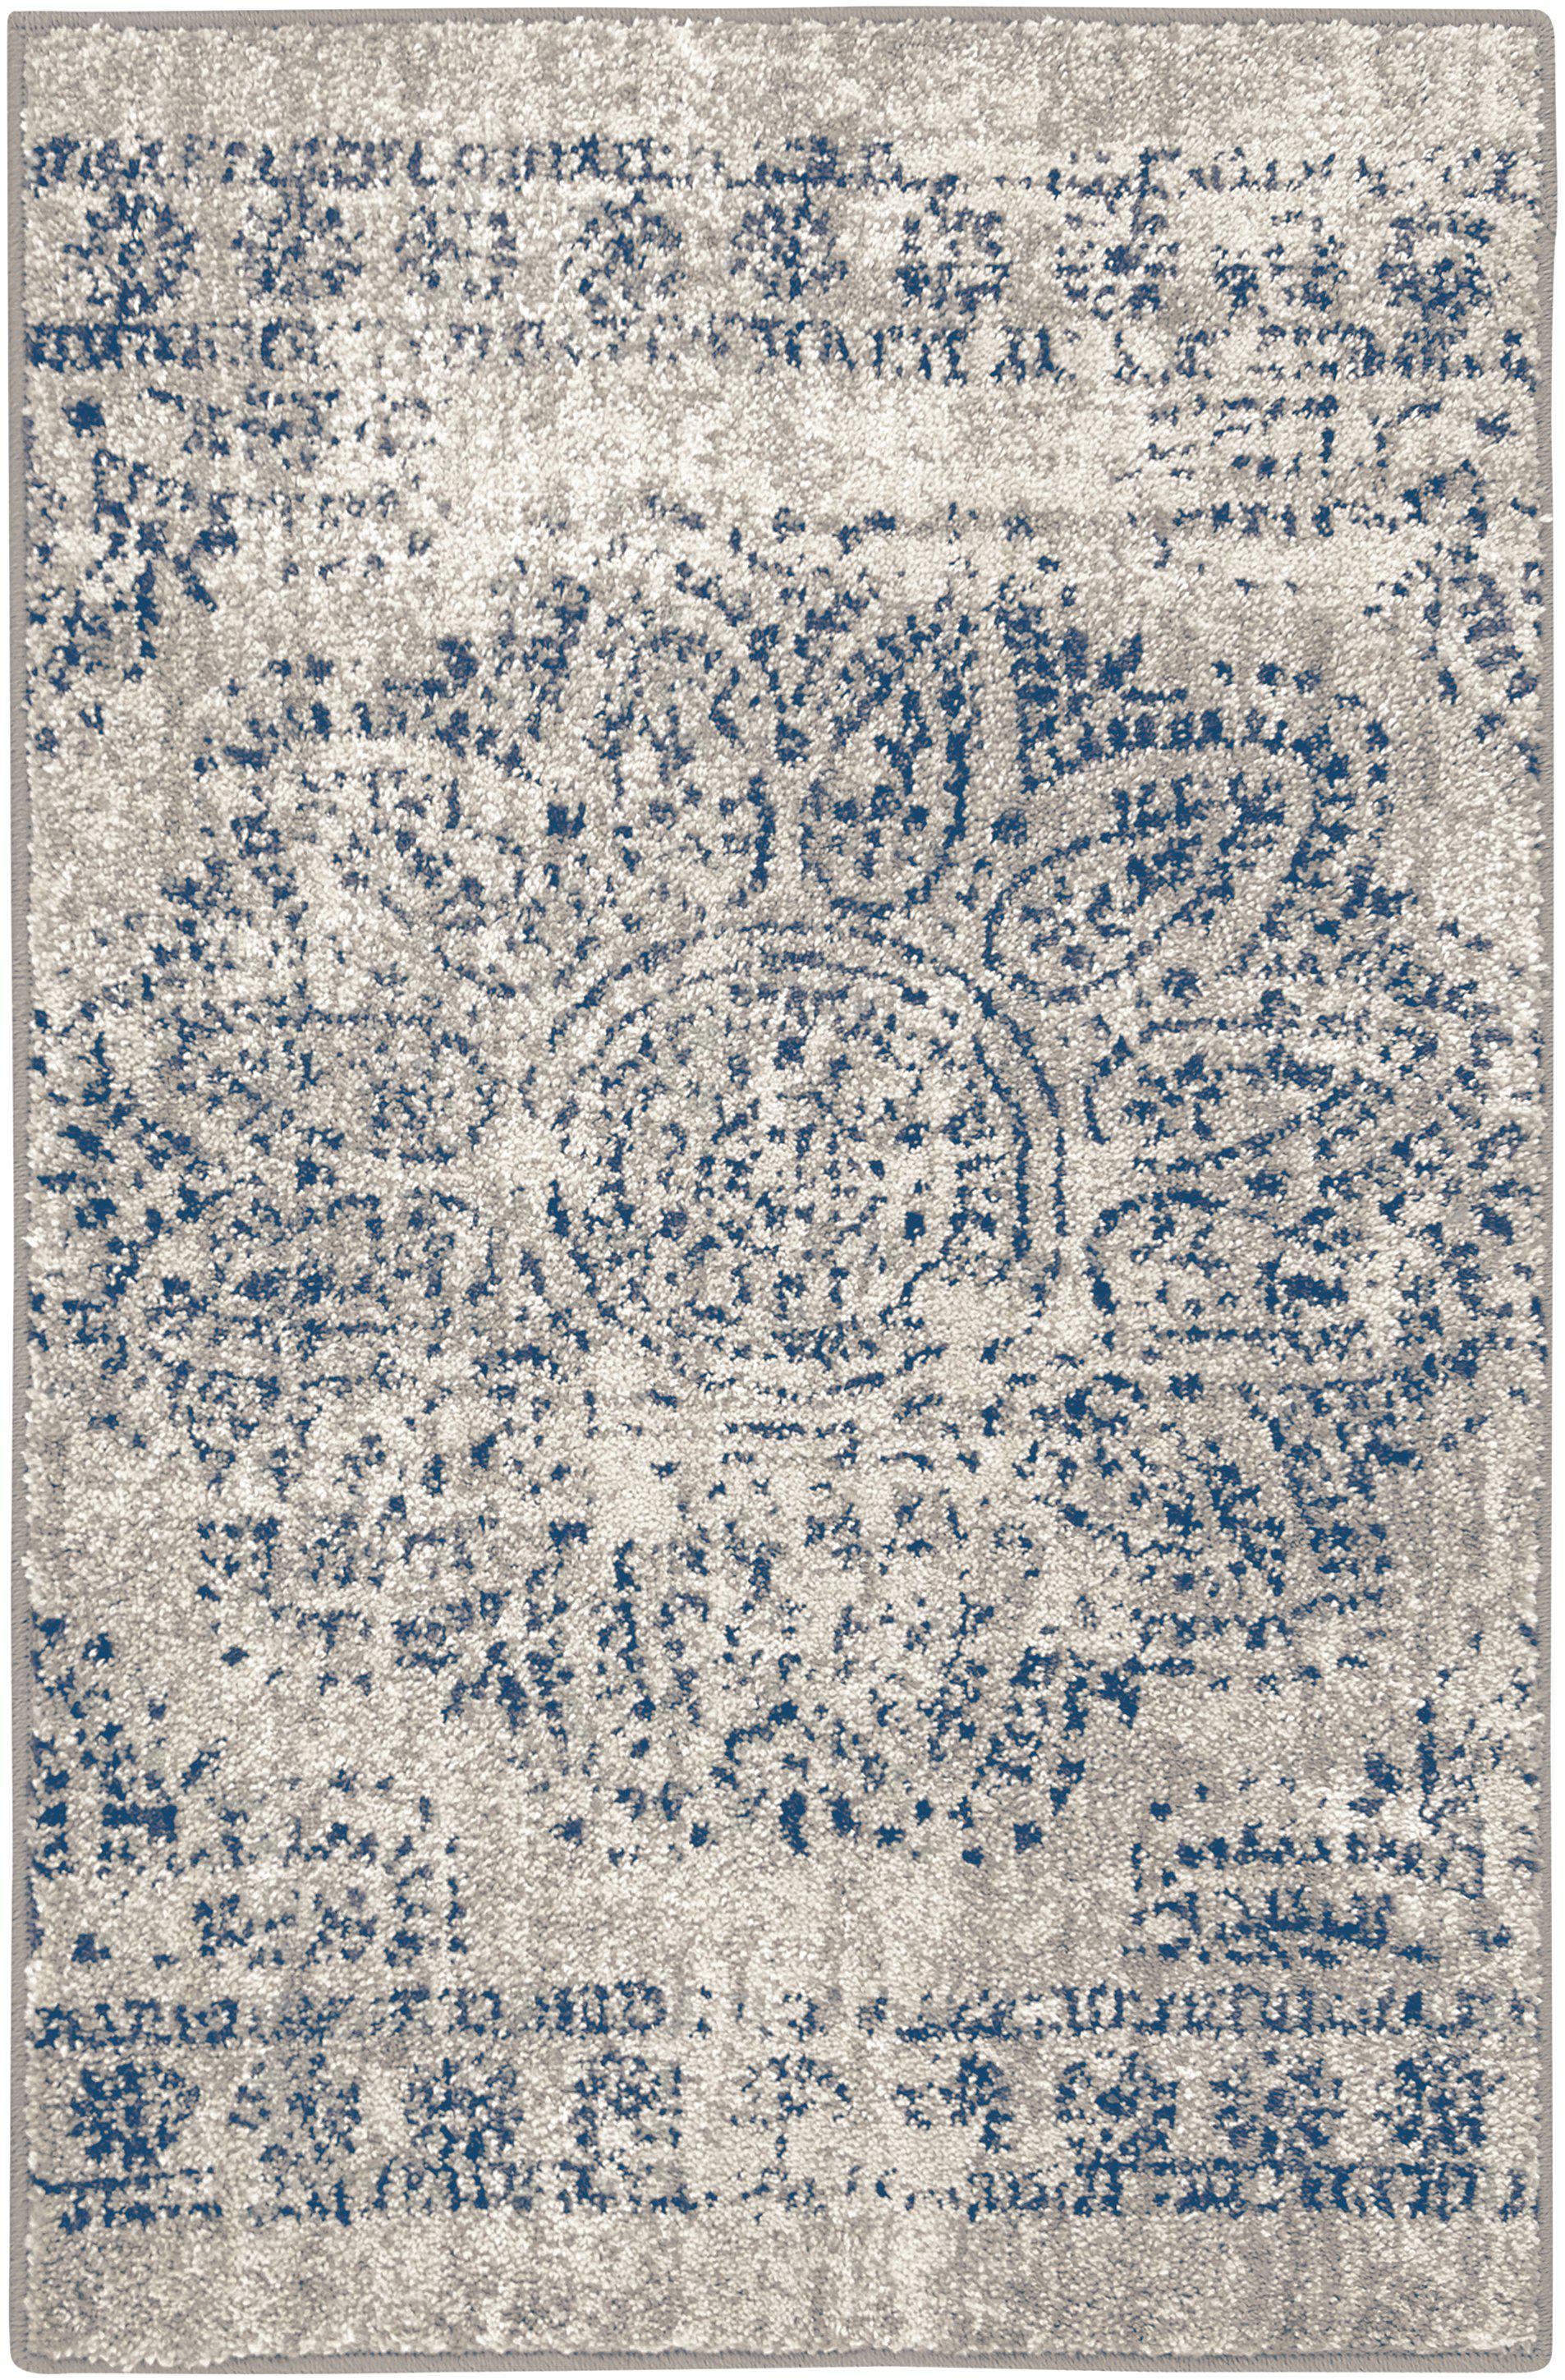 Expressions Dharma Medallion Indigo by Scott Living Area Rug-Area Rug-Scott Living-2'x3'-The Rug Truck